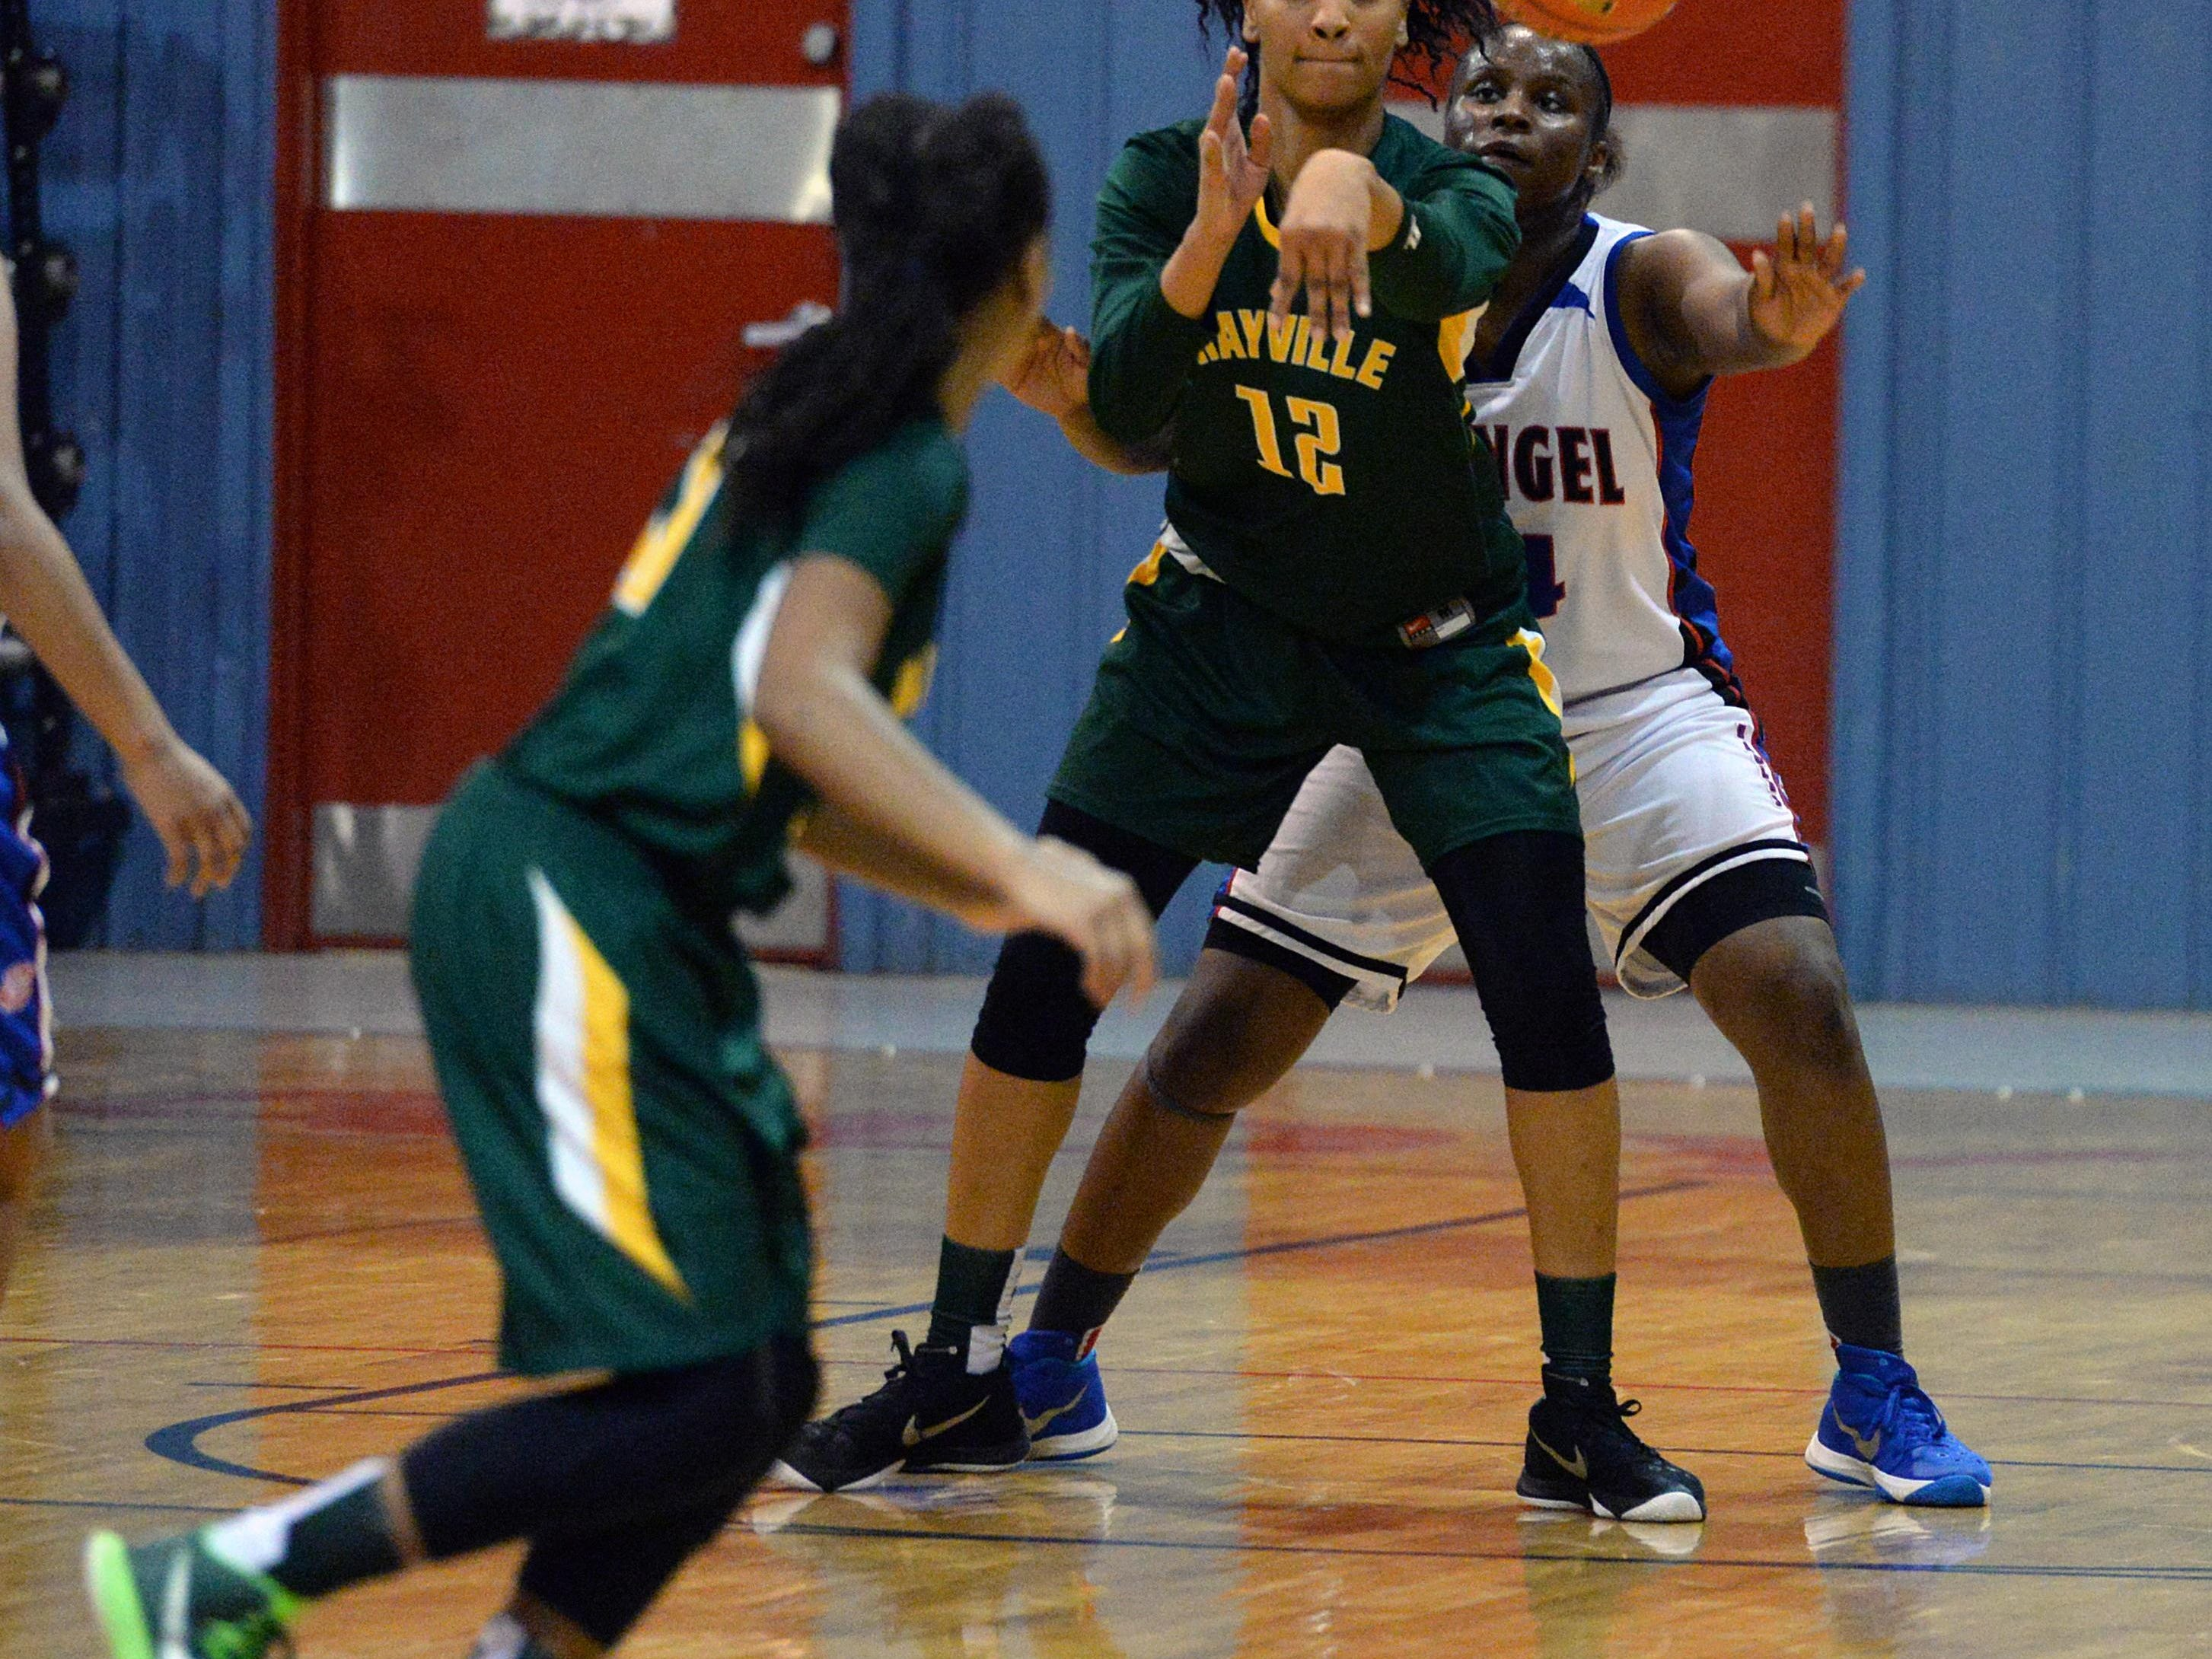 Micaela Wilson of Rayville passes the ball to a teammate as Evangel's Breanna Frierson looks on.